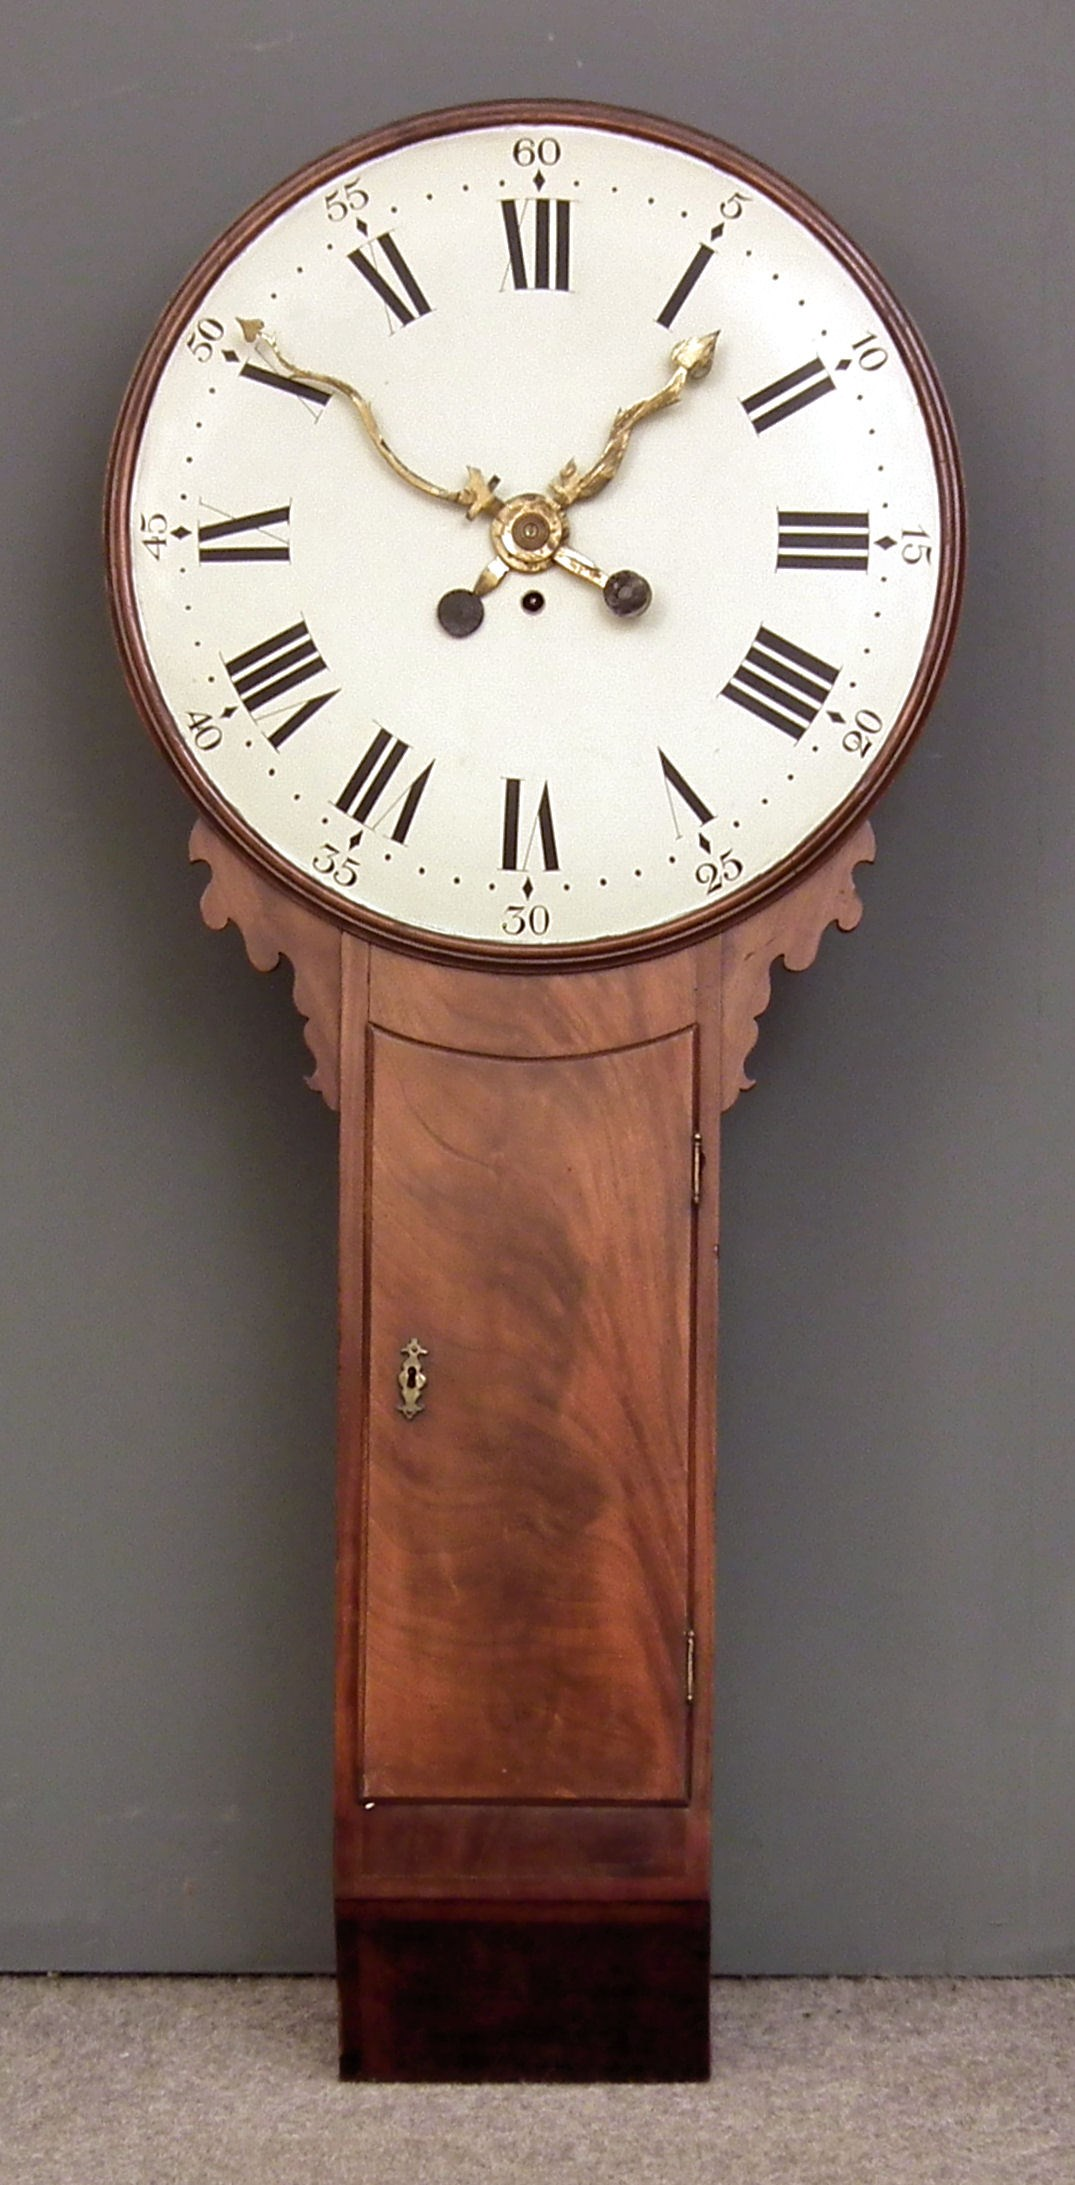 Antique clocks bring bidding battles to The Canterbury Auction Galleries Banner Image